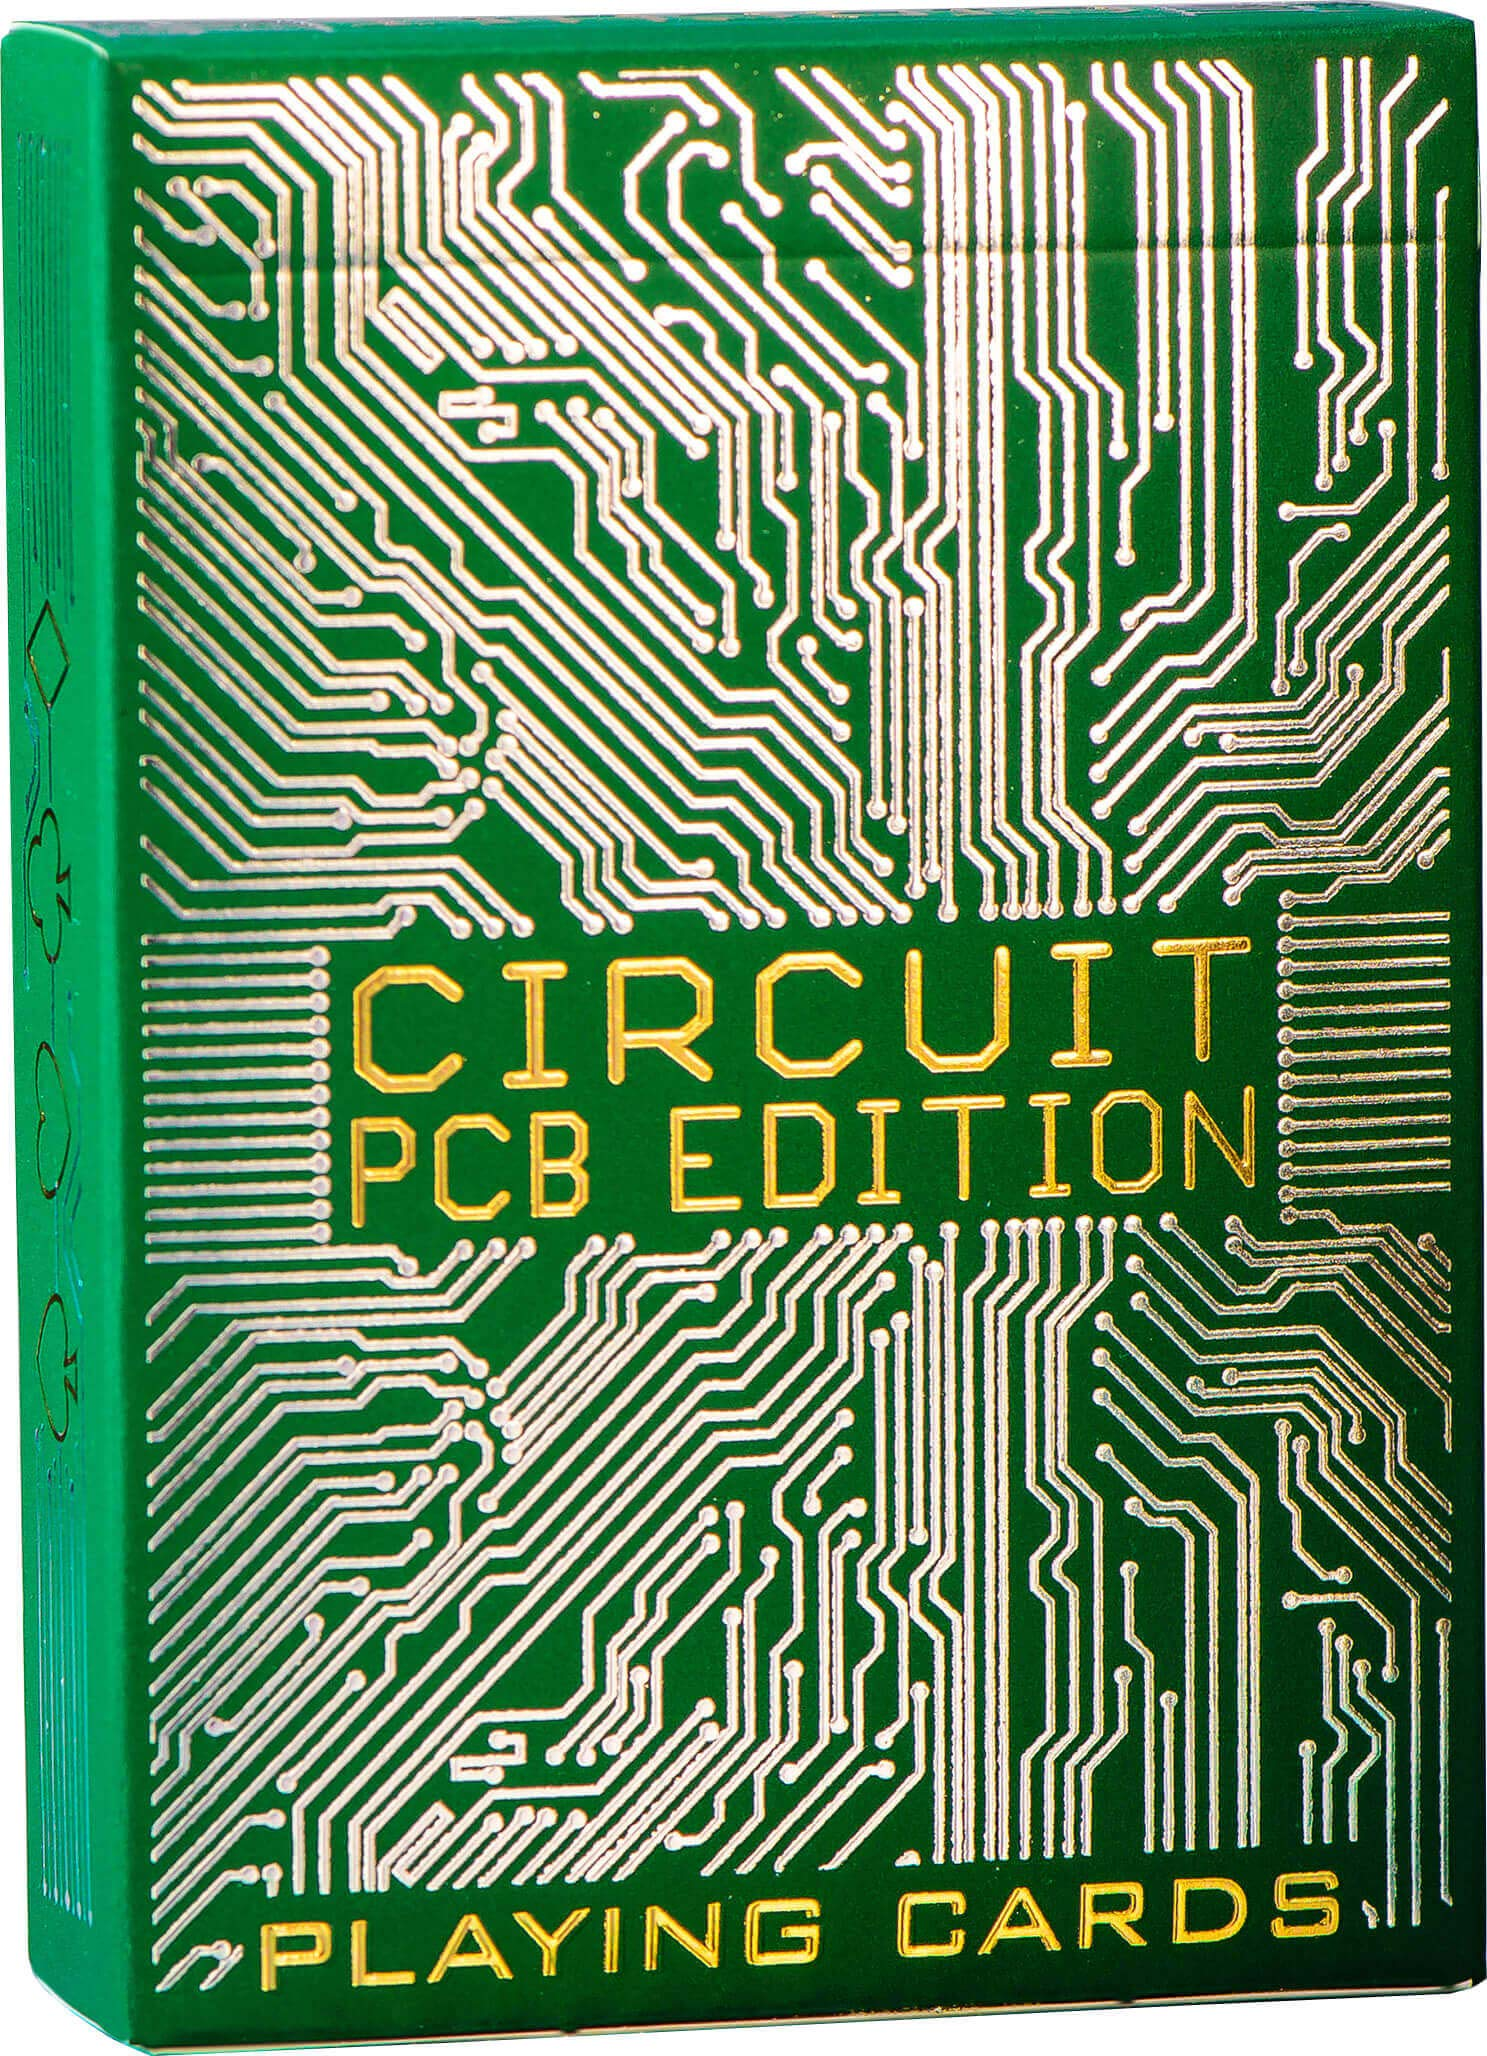 Circuit Playing Cards, Metallic Green Deck of Cards, Premium Card Deck, Best Poker Cards, Unique Bright Colors for Kids & Adults, Computer Themed, Standard Size by Elephant Playing Cards